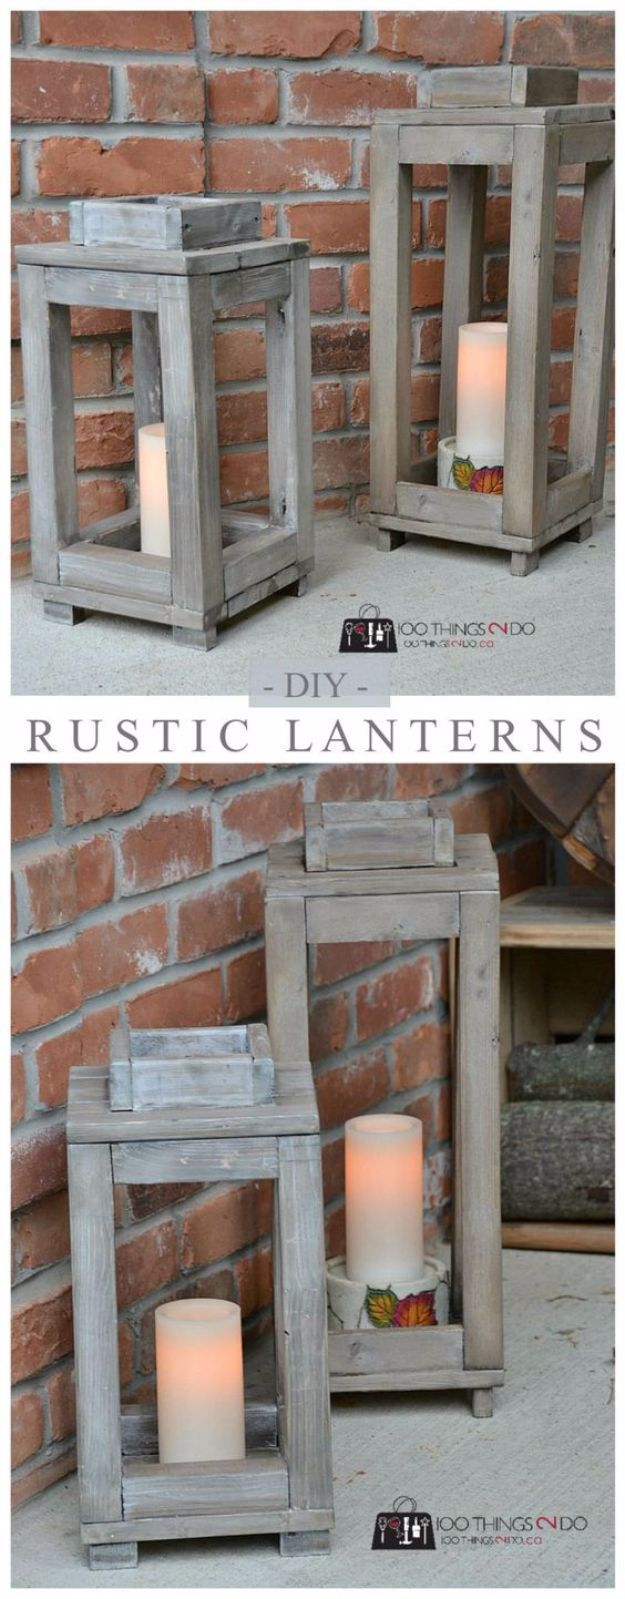 Best Country Decor Ideas for Your Porch - DIY Wood Lanterns - Rustic Farmhouse Decor Tutorials and Easy Vintage Shabby Chic Home Decor for Kitchen, Living Room and Bathroom - Creative Country Crafts, Furniture, Patio Decor and Rustic Wall Art and Accessories to Make and Sell http://diyjoy.com/country-decor-ideas-porchs #homedecoraccessories